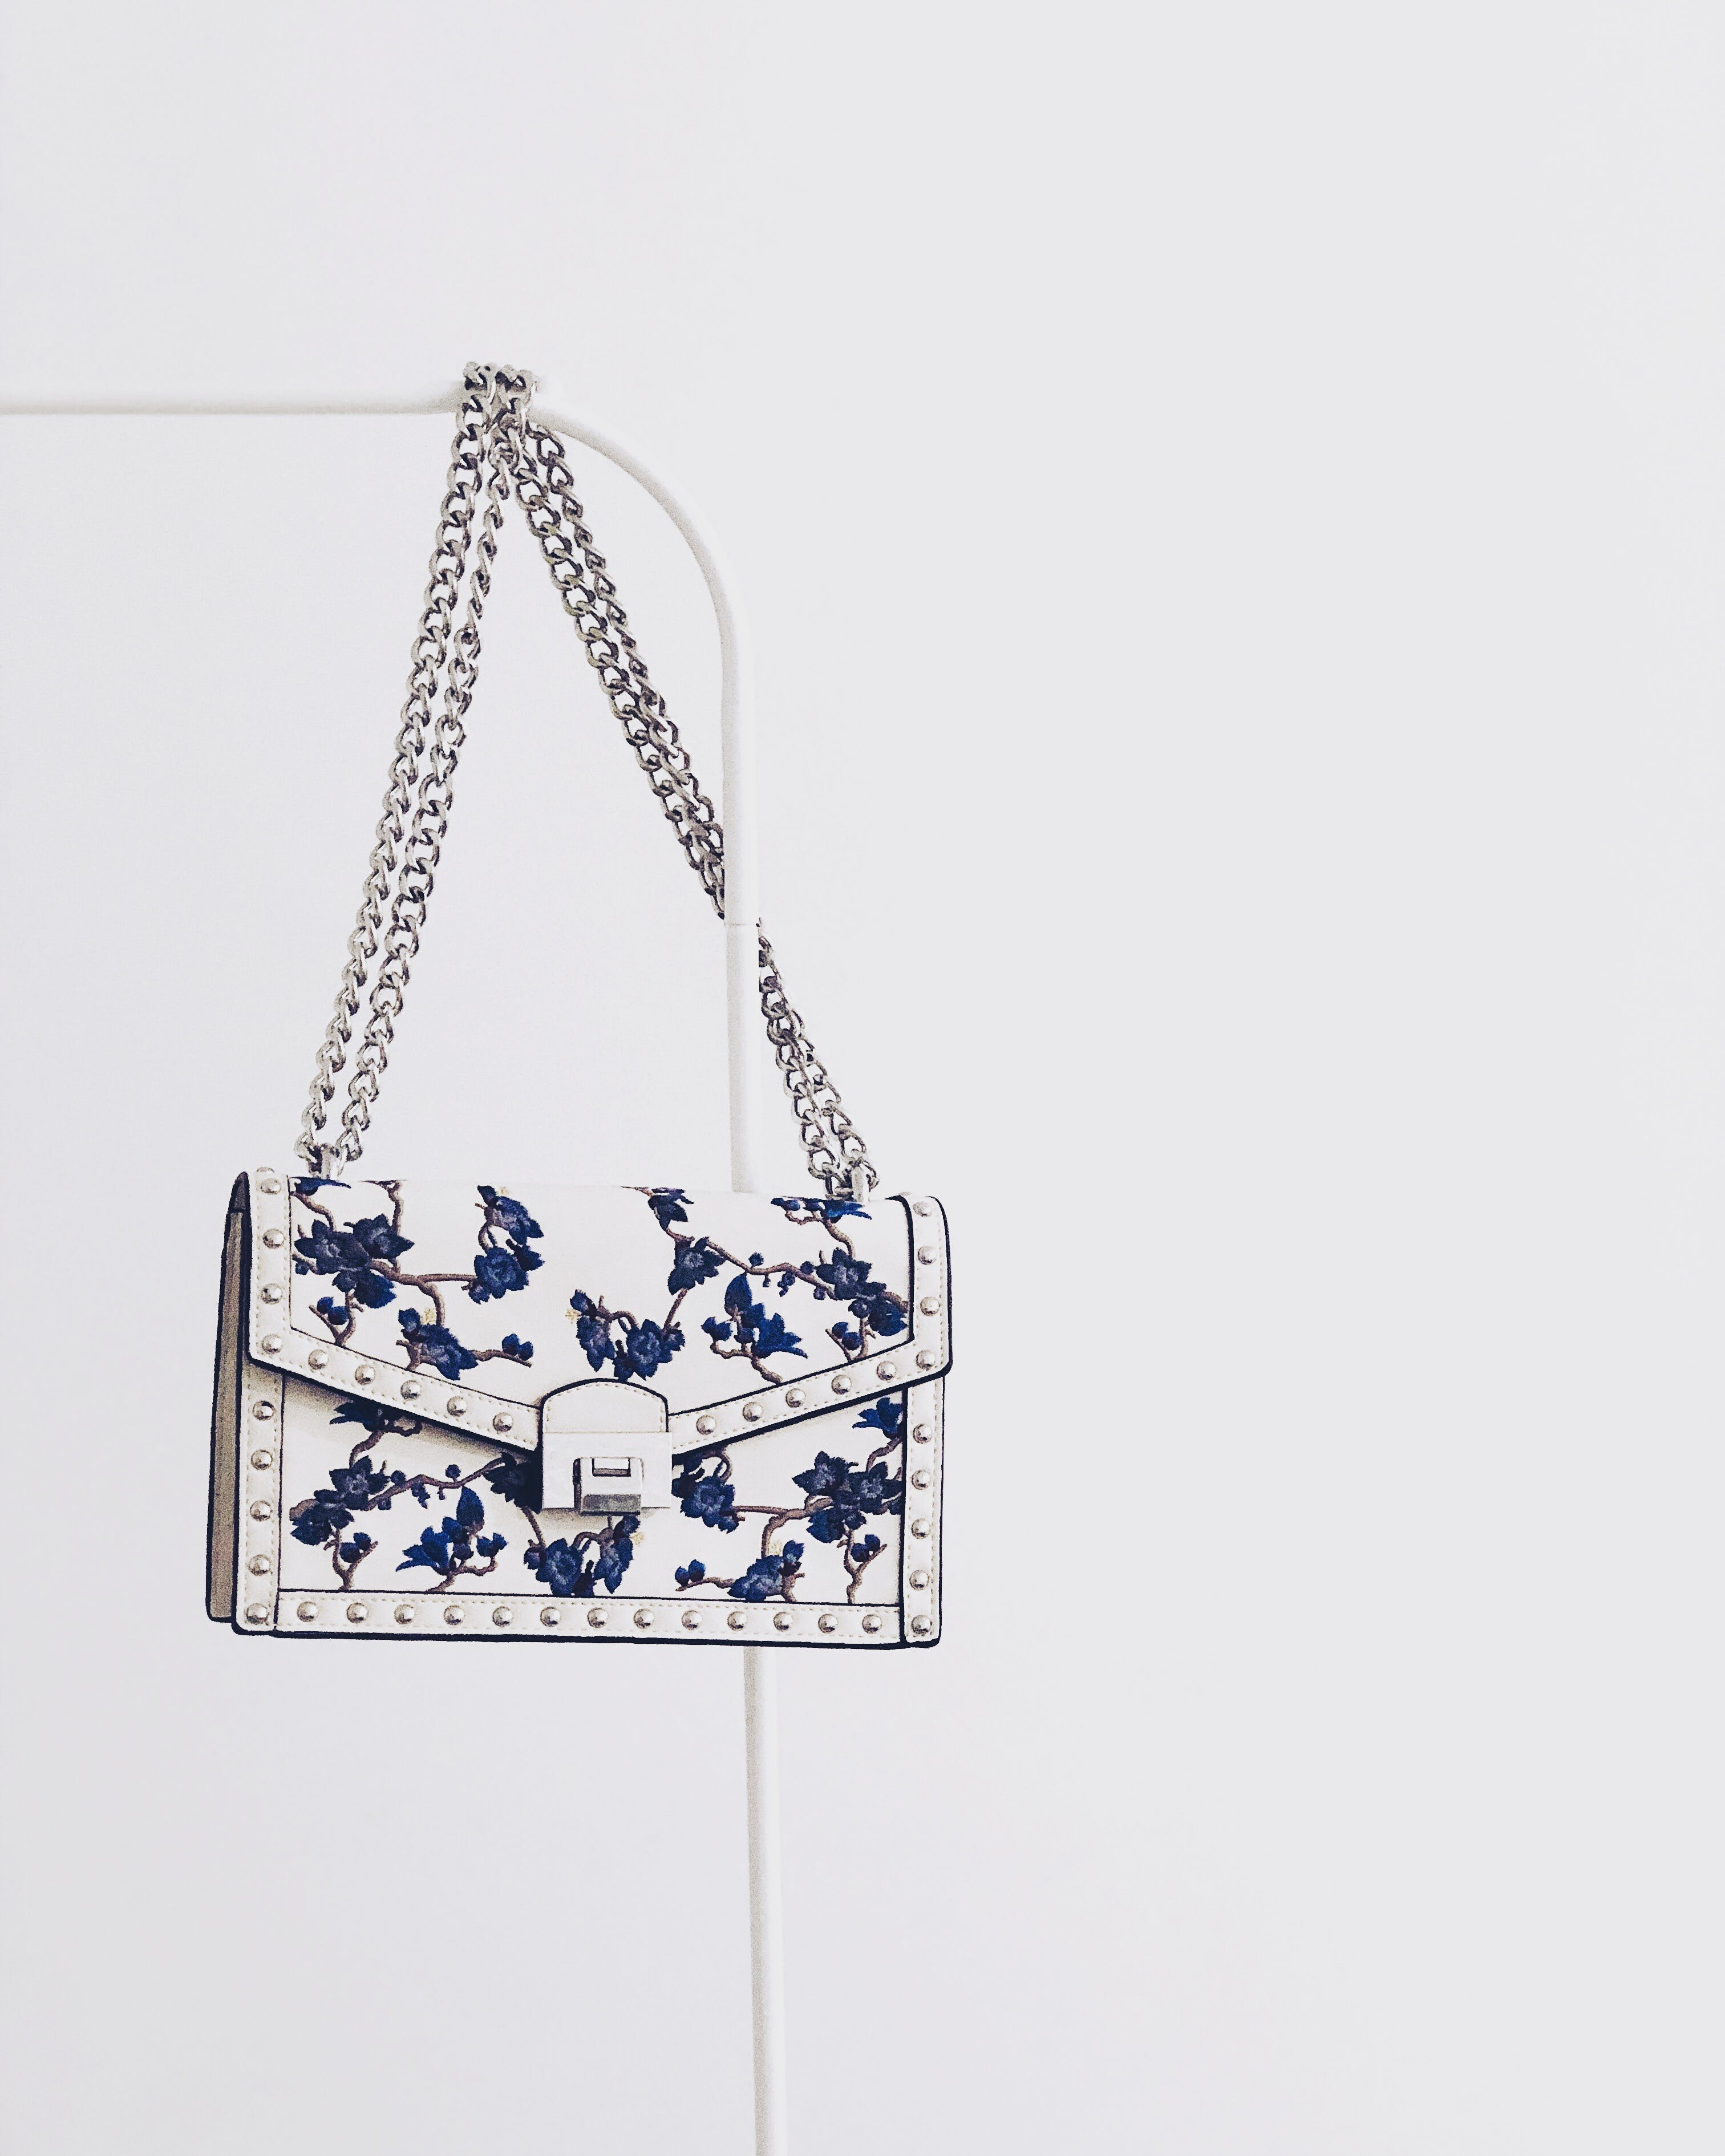 White and Blue Floral Flap Sling Bag Hanging on White Steel Rack